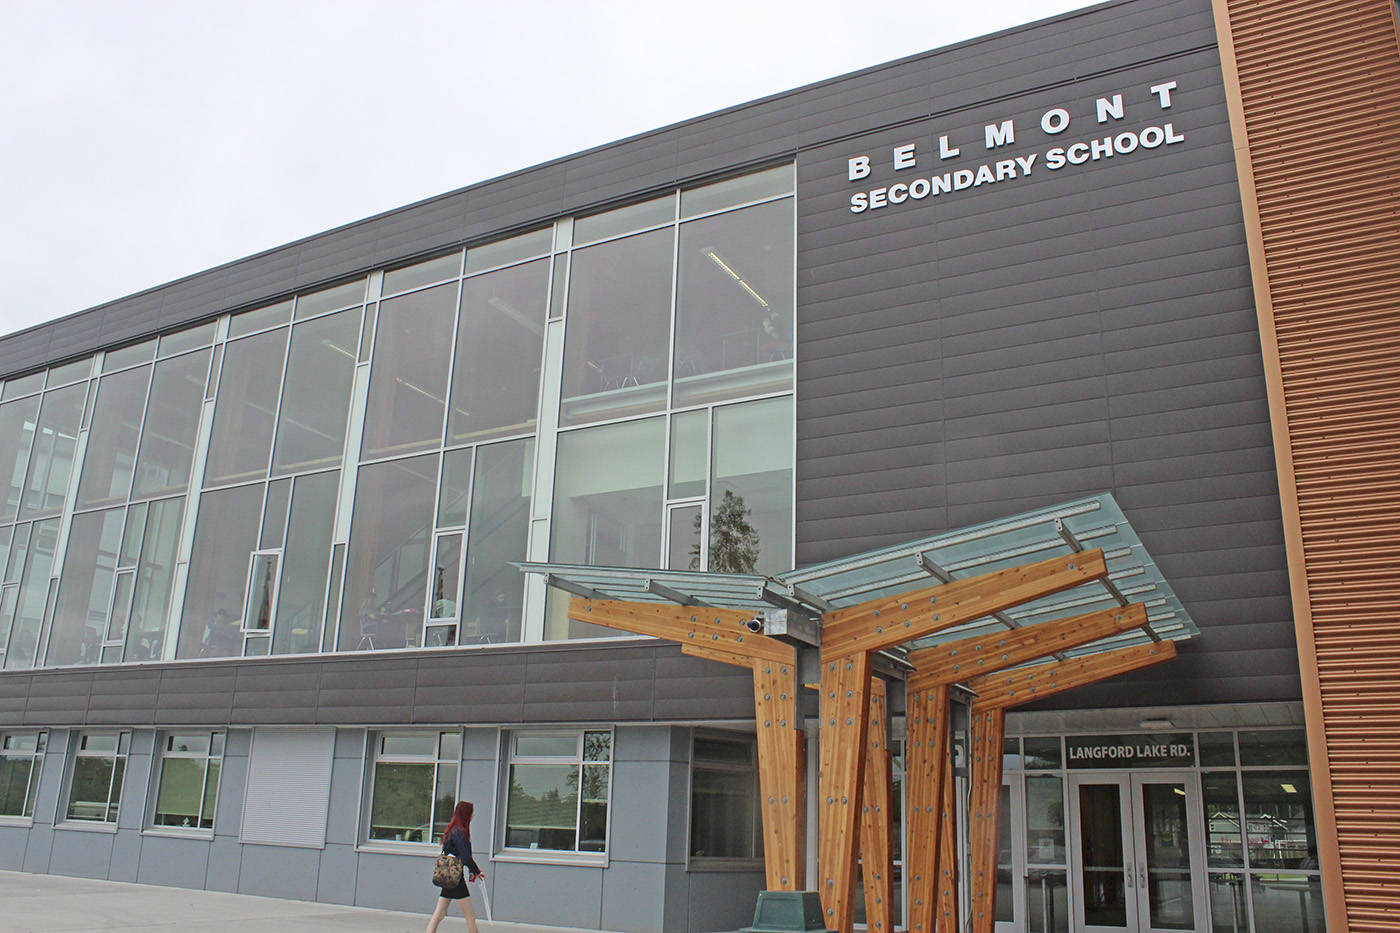 A Belmont Secondary school student has died of a suspected drug overdose, said the Sooke School District. (Kendra Wong/News Gazette staff)